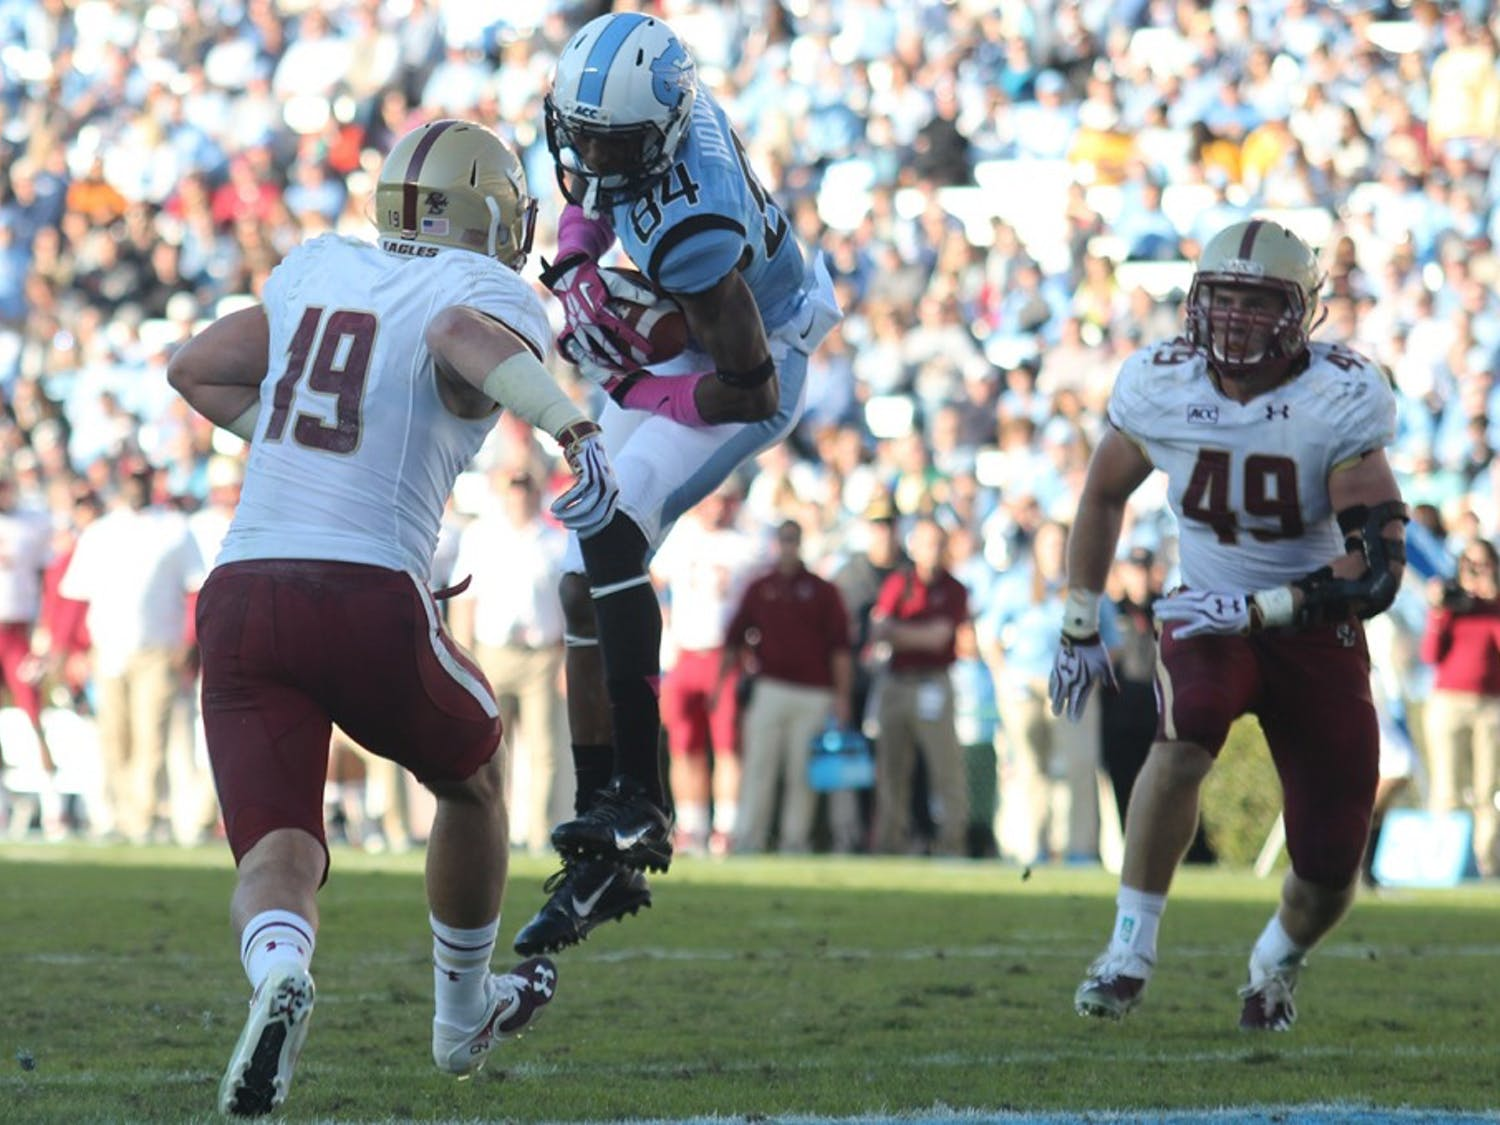 UNC played Boston College on October 26th.